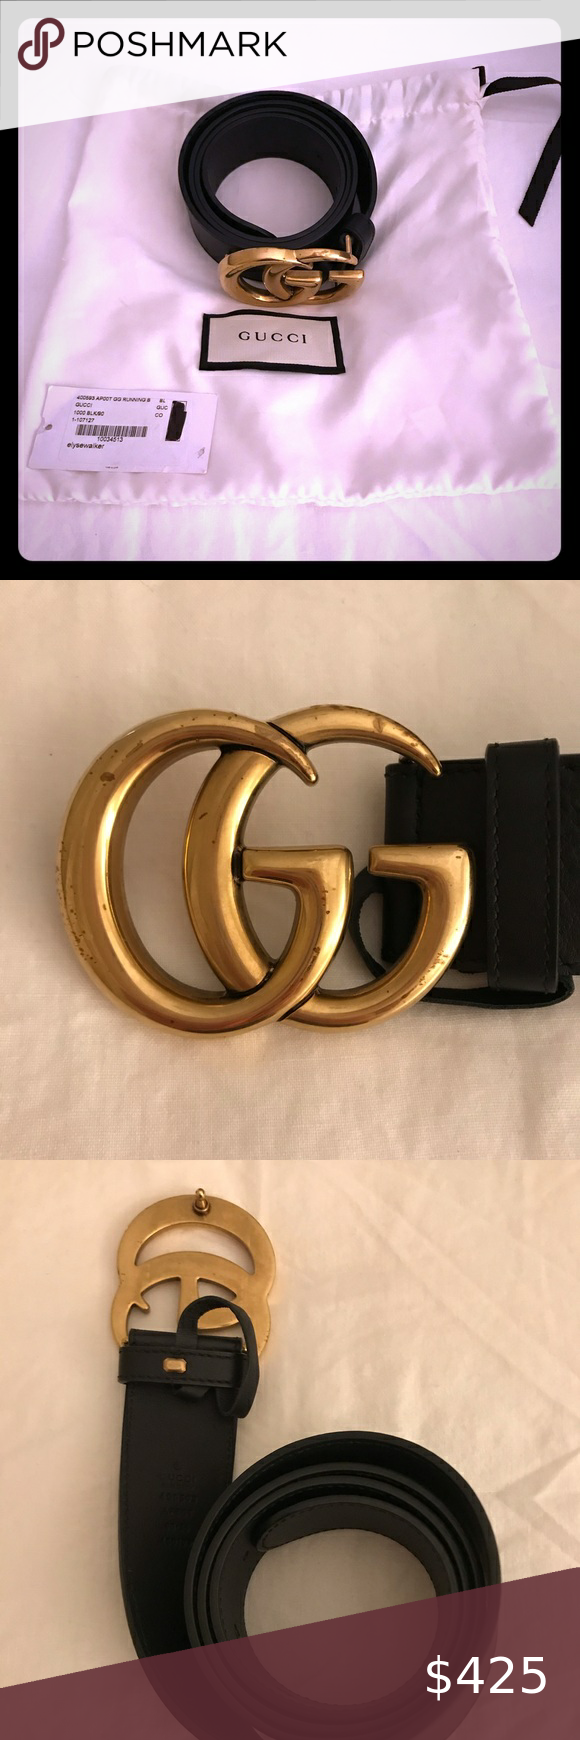 Authentic Gucci Belt Gucci Belt Black Leather With Brushed Gold Hardware Size 90 Excellent Condition Worn Less Authentic Gucci Belt Gucci Belt Belt